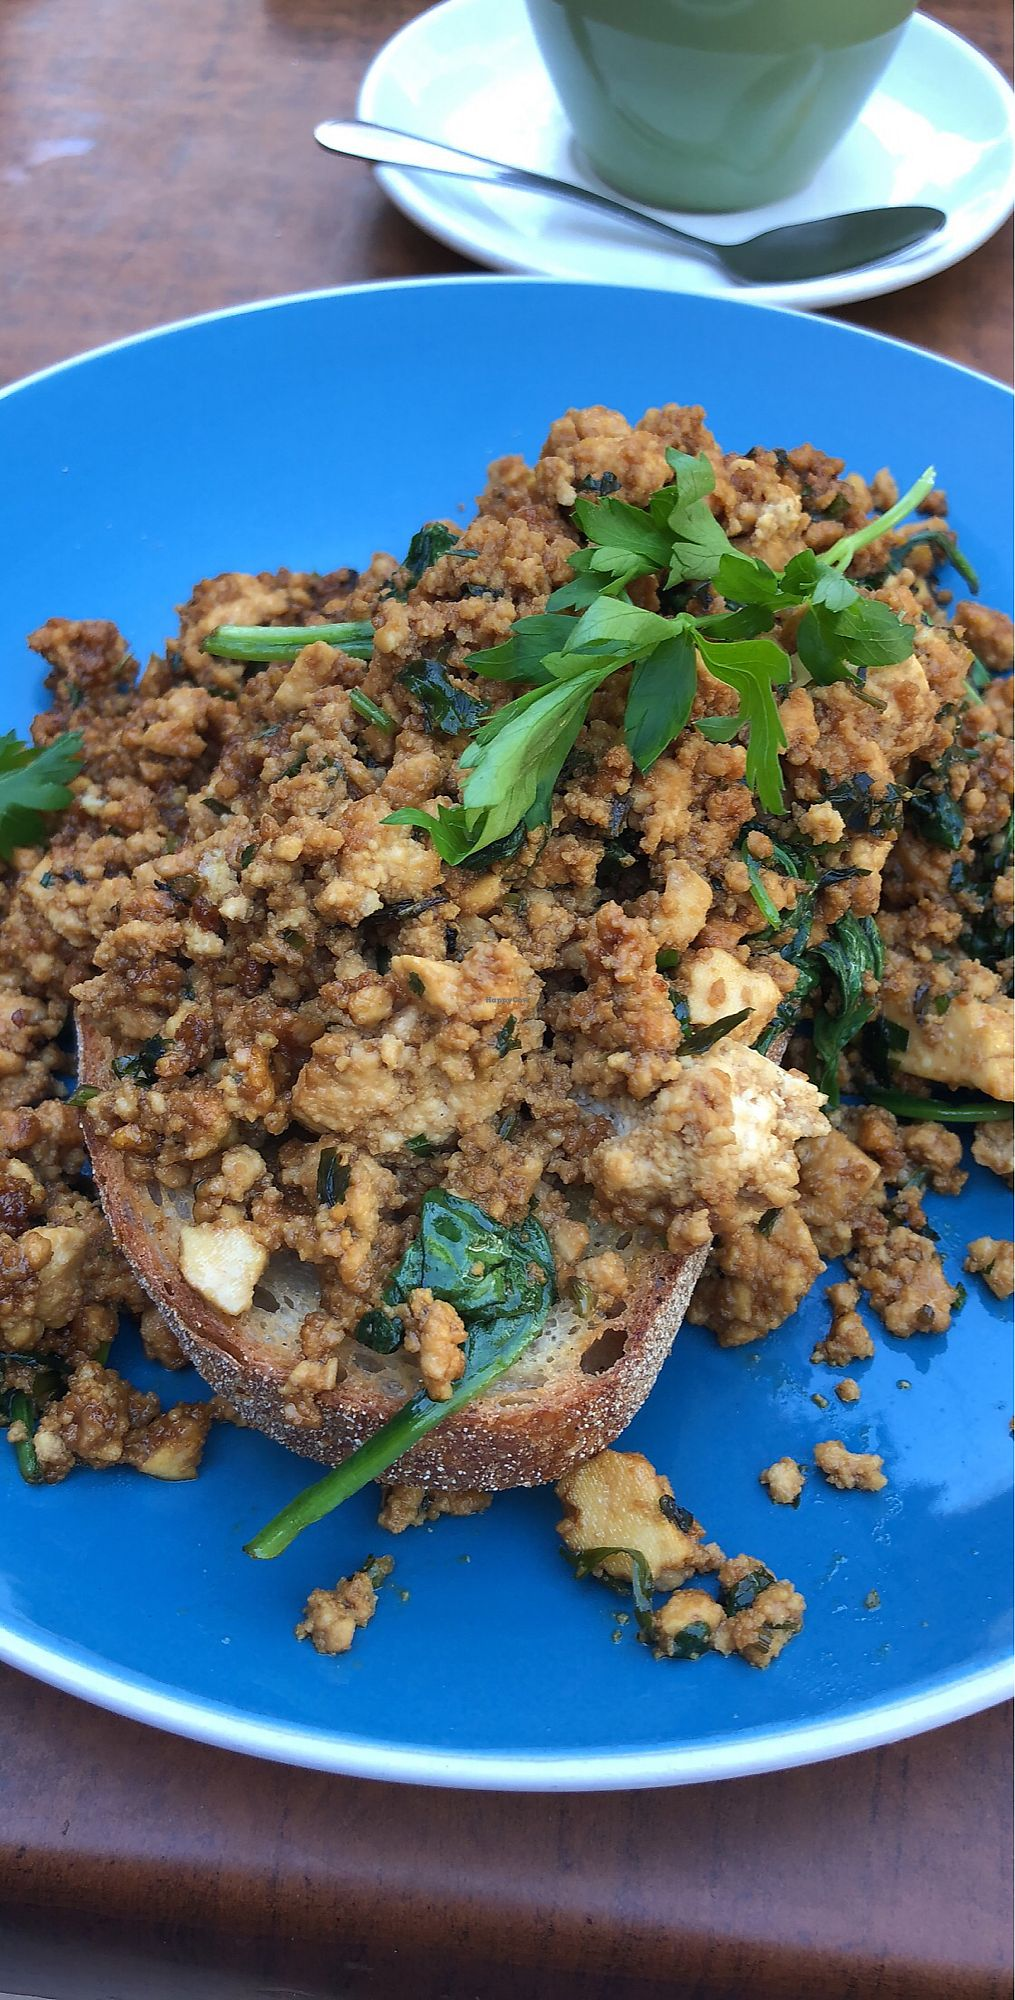 """Photo of Earthly Pleasures Cafe  by <a href=""""/members/profile/emilysarah13"""">emilysarah13</a> <br/>Tofu Scramble with a gorgeous sweet Kecap Manis sauce giving it a delectable sweet and savoury mix <br/> March 14, 2018  - <a href='/contact/abuse/image/39733/370752'>Report</a>"""